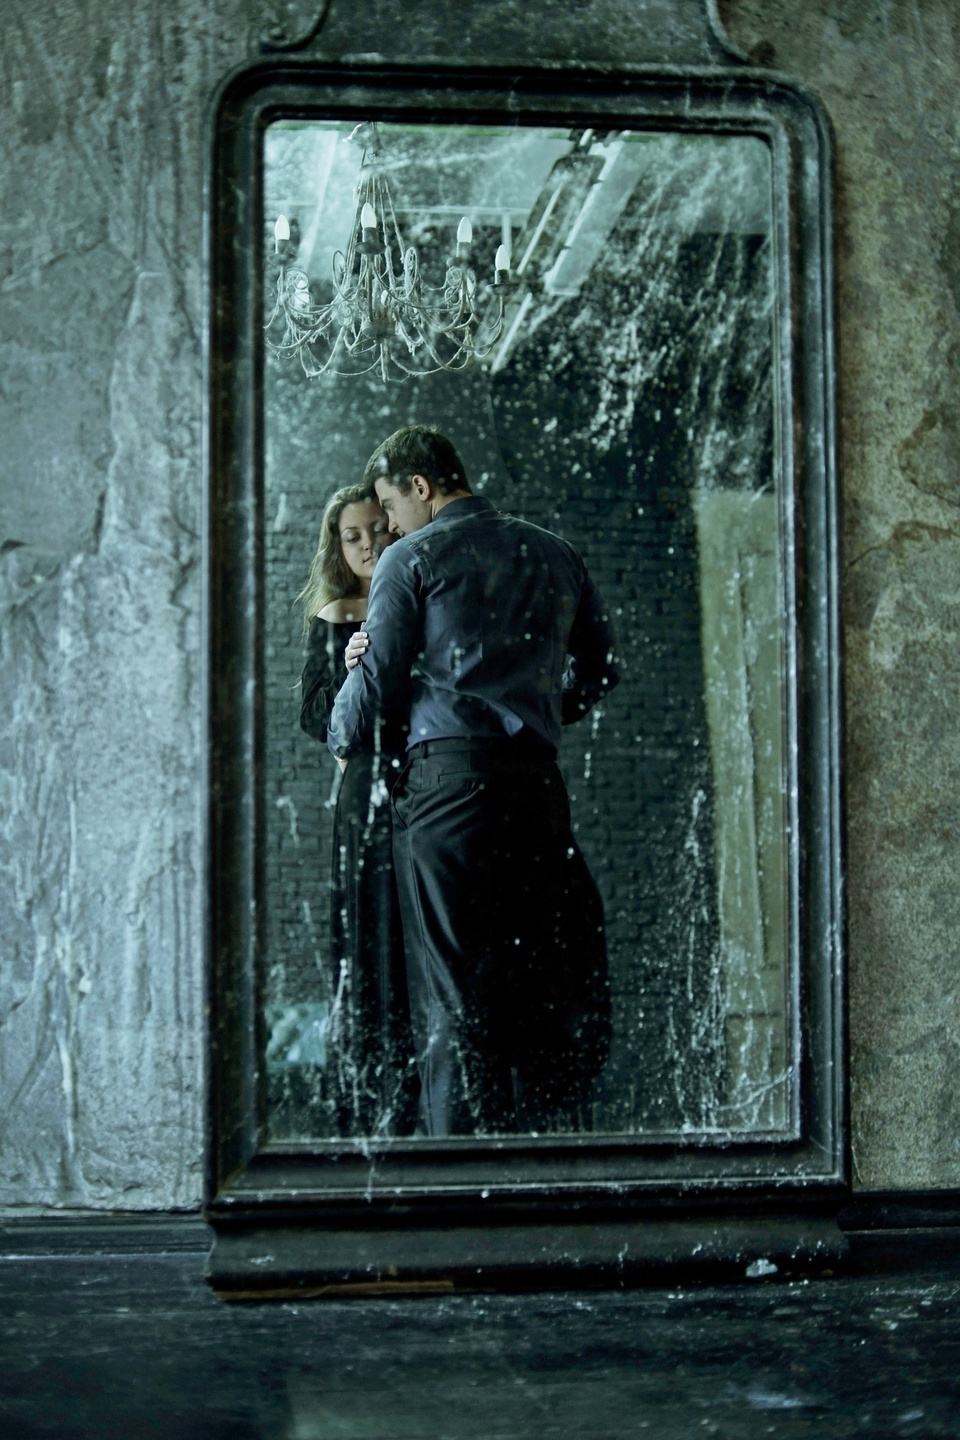 Sweethearts in the mirror | portrait, pair, love, mirror, wall, chandelier, old, pretty girl, embrace, man